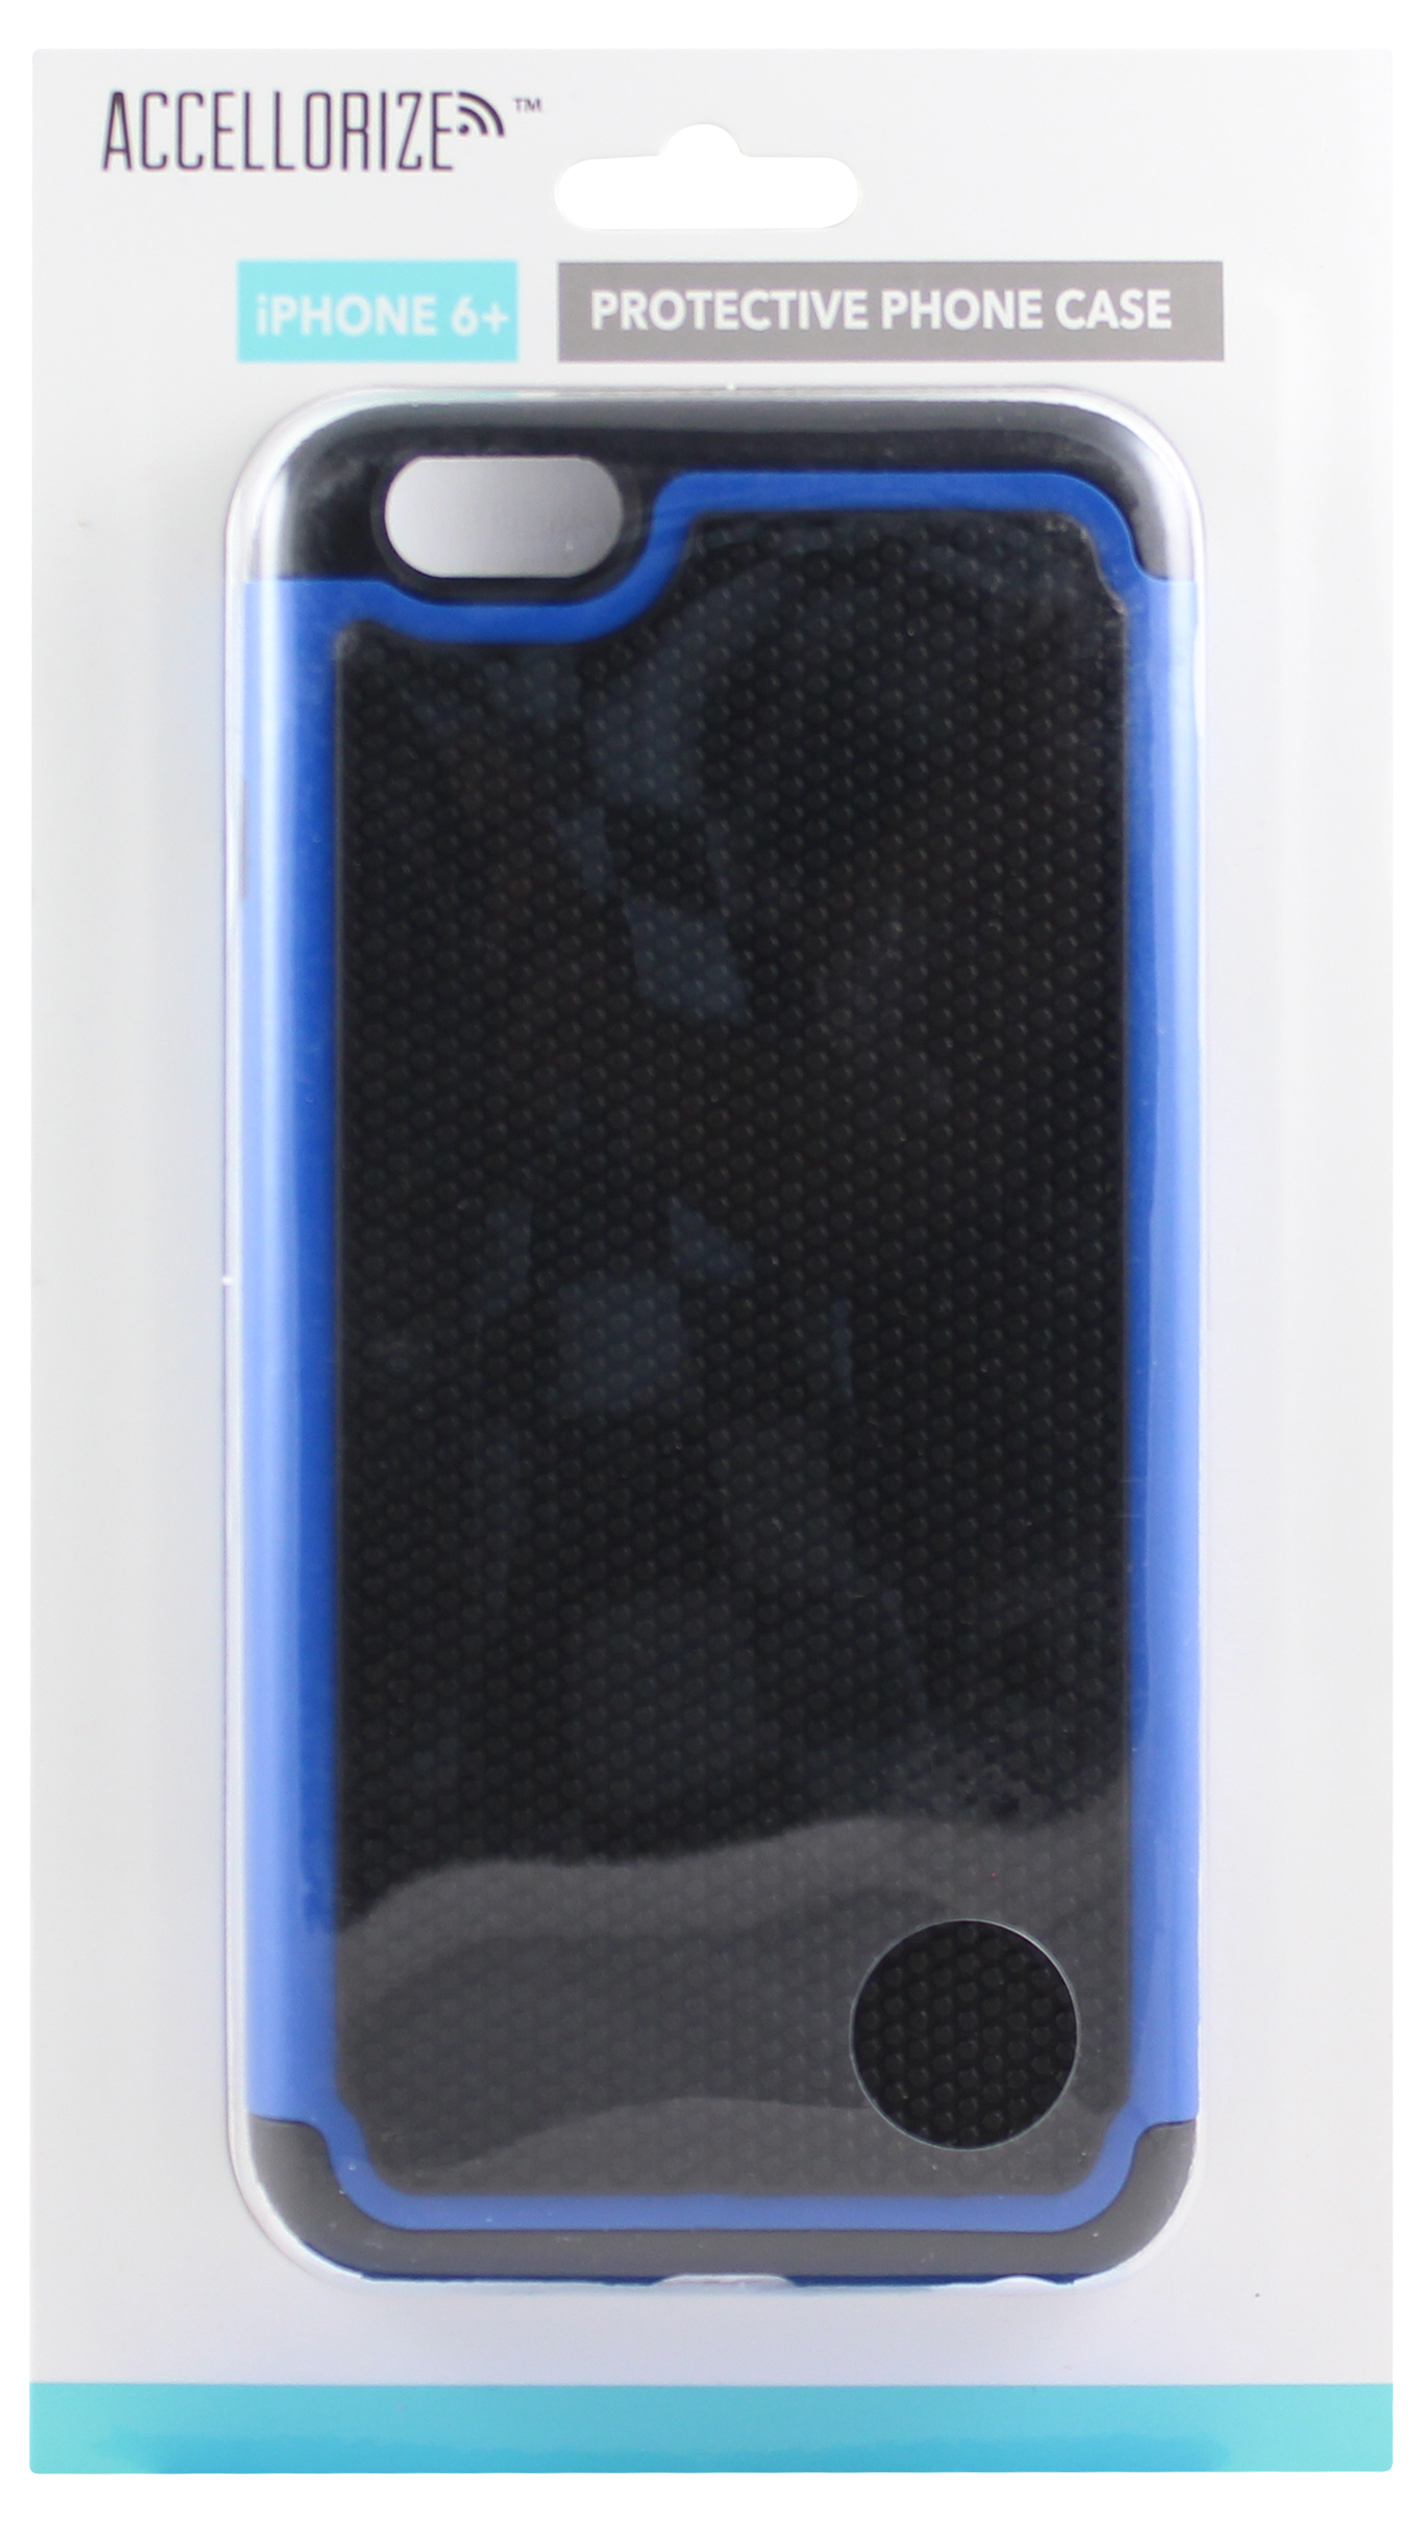 ACCELLORIZE 35013 BLACK & BLUE PROTECTIVE CASE FOR IPHONE 6